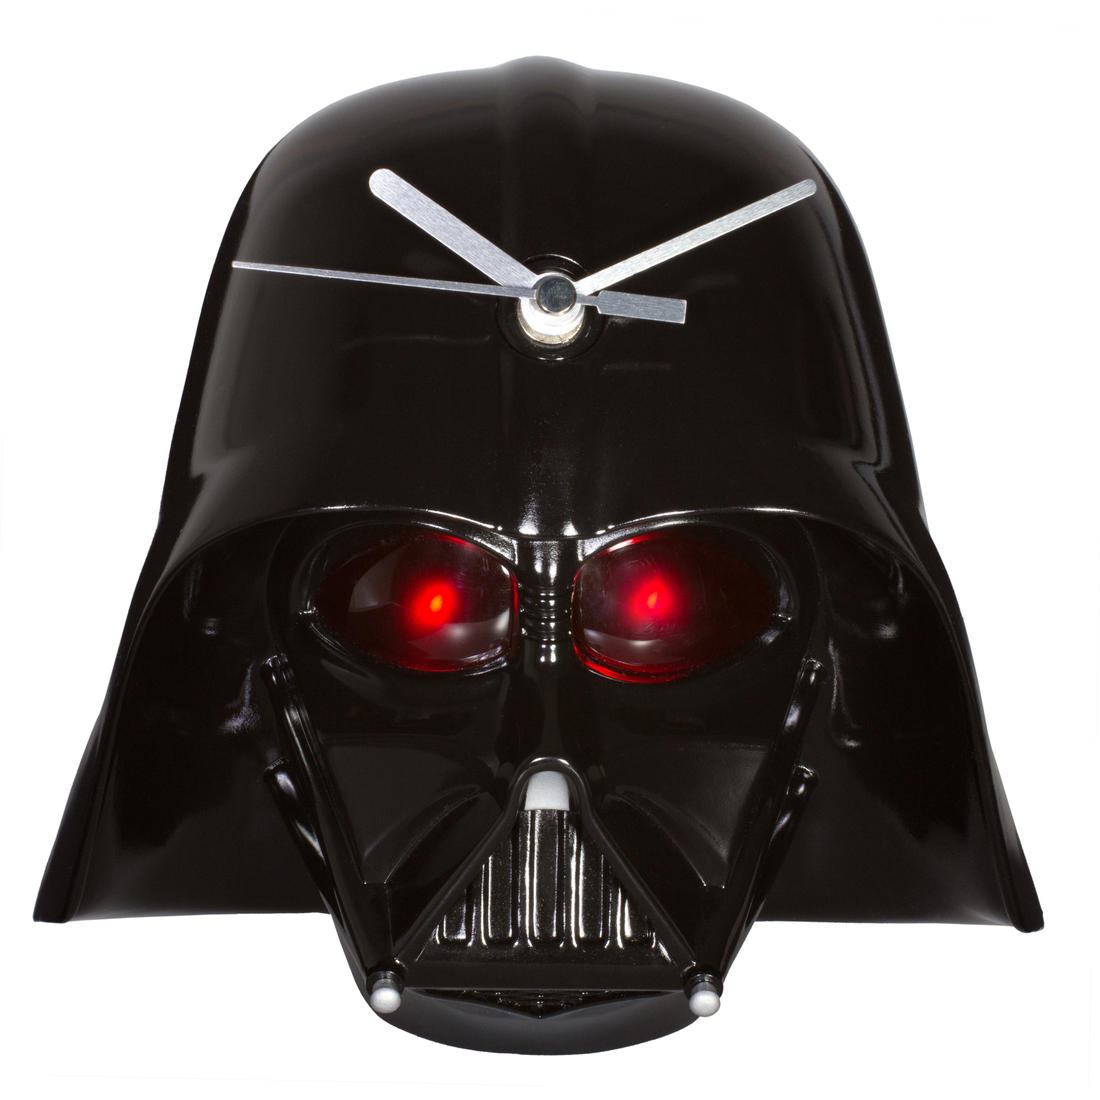 Darth Vader 3d Wall Clock Getdigital